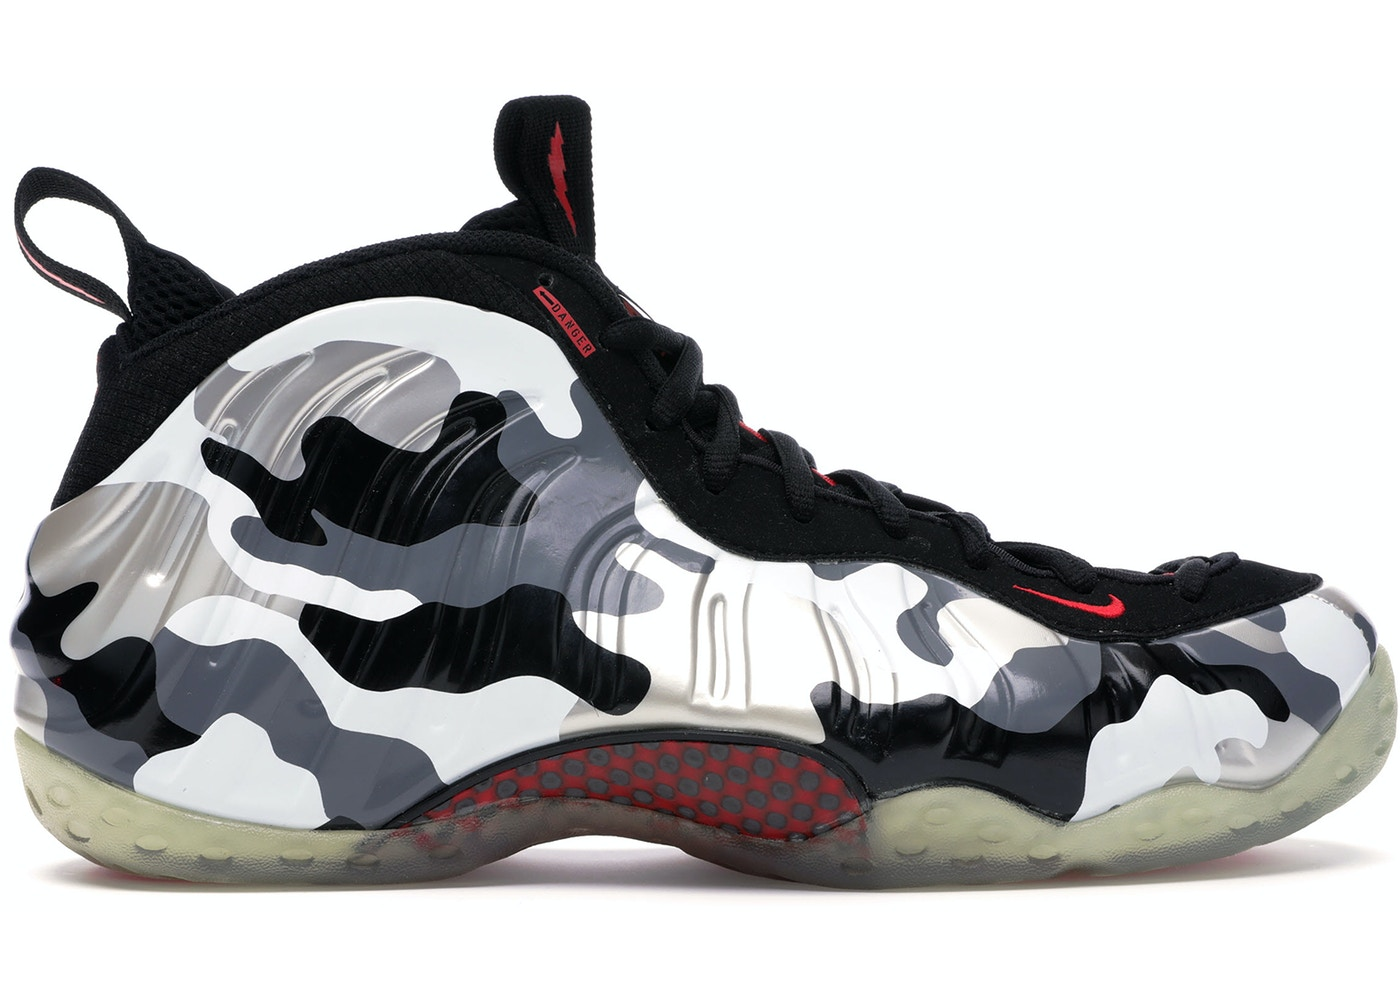 huge selection of 16fbf adbf5 Air Foamposite One Fighter Jet - 575420-001